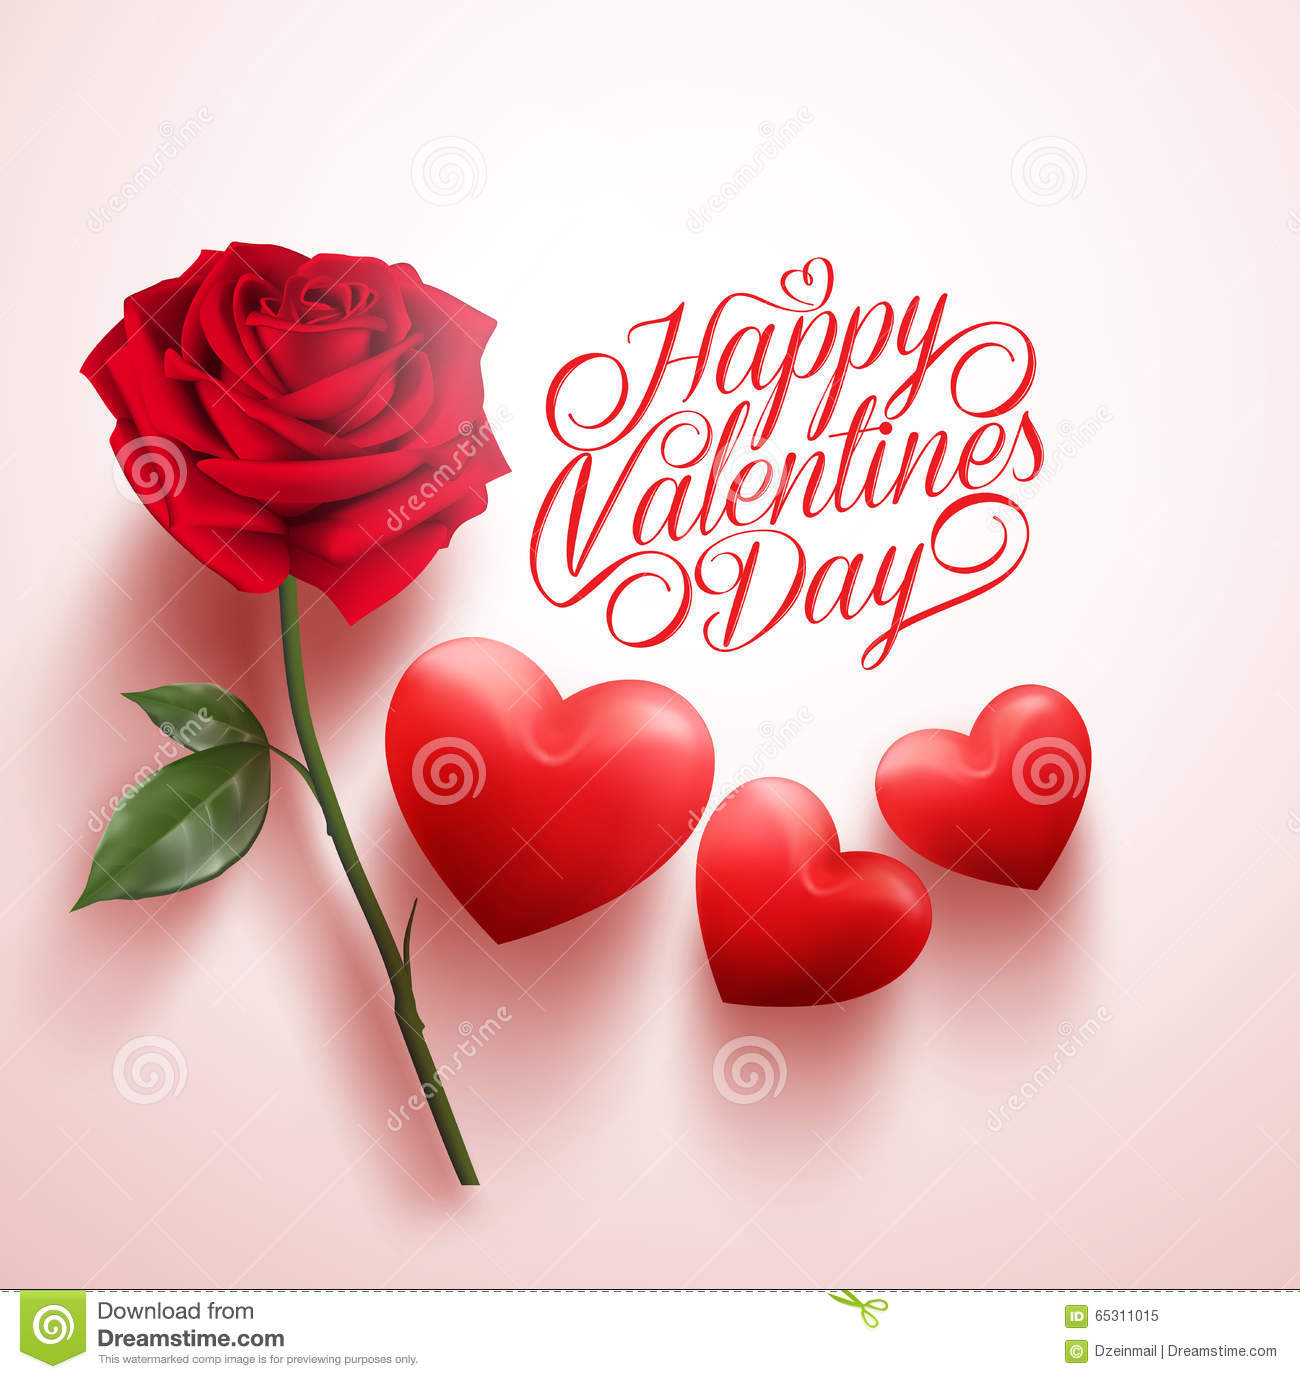 Red Rose And Hearts With Happy Valentines Day Message Stock Vector